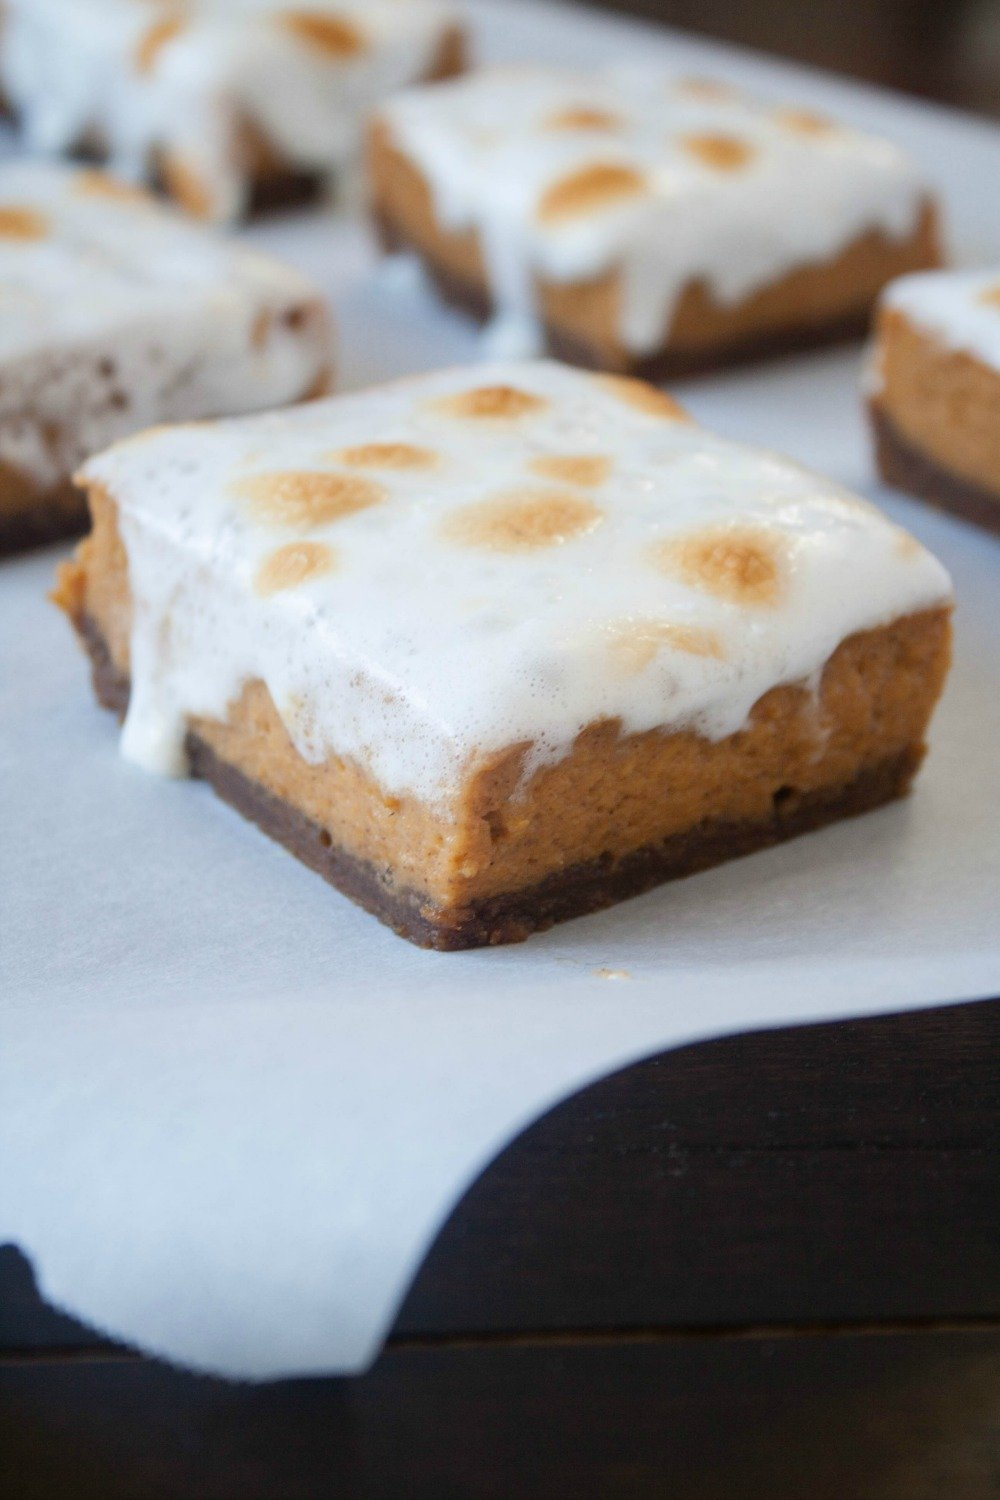 Put a new spin on pumpkin pie this Fall! This dessert features the flavor of pumpkin pie in bar form, with a flavorful gingersnap crust. And on the top, some toasted marshmallows!